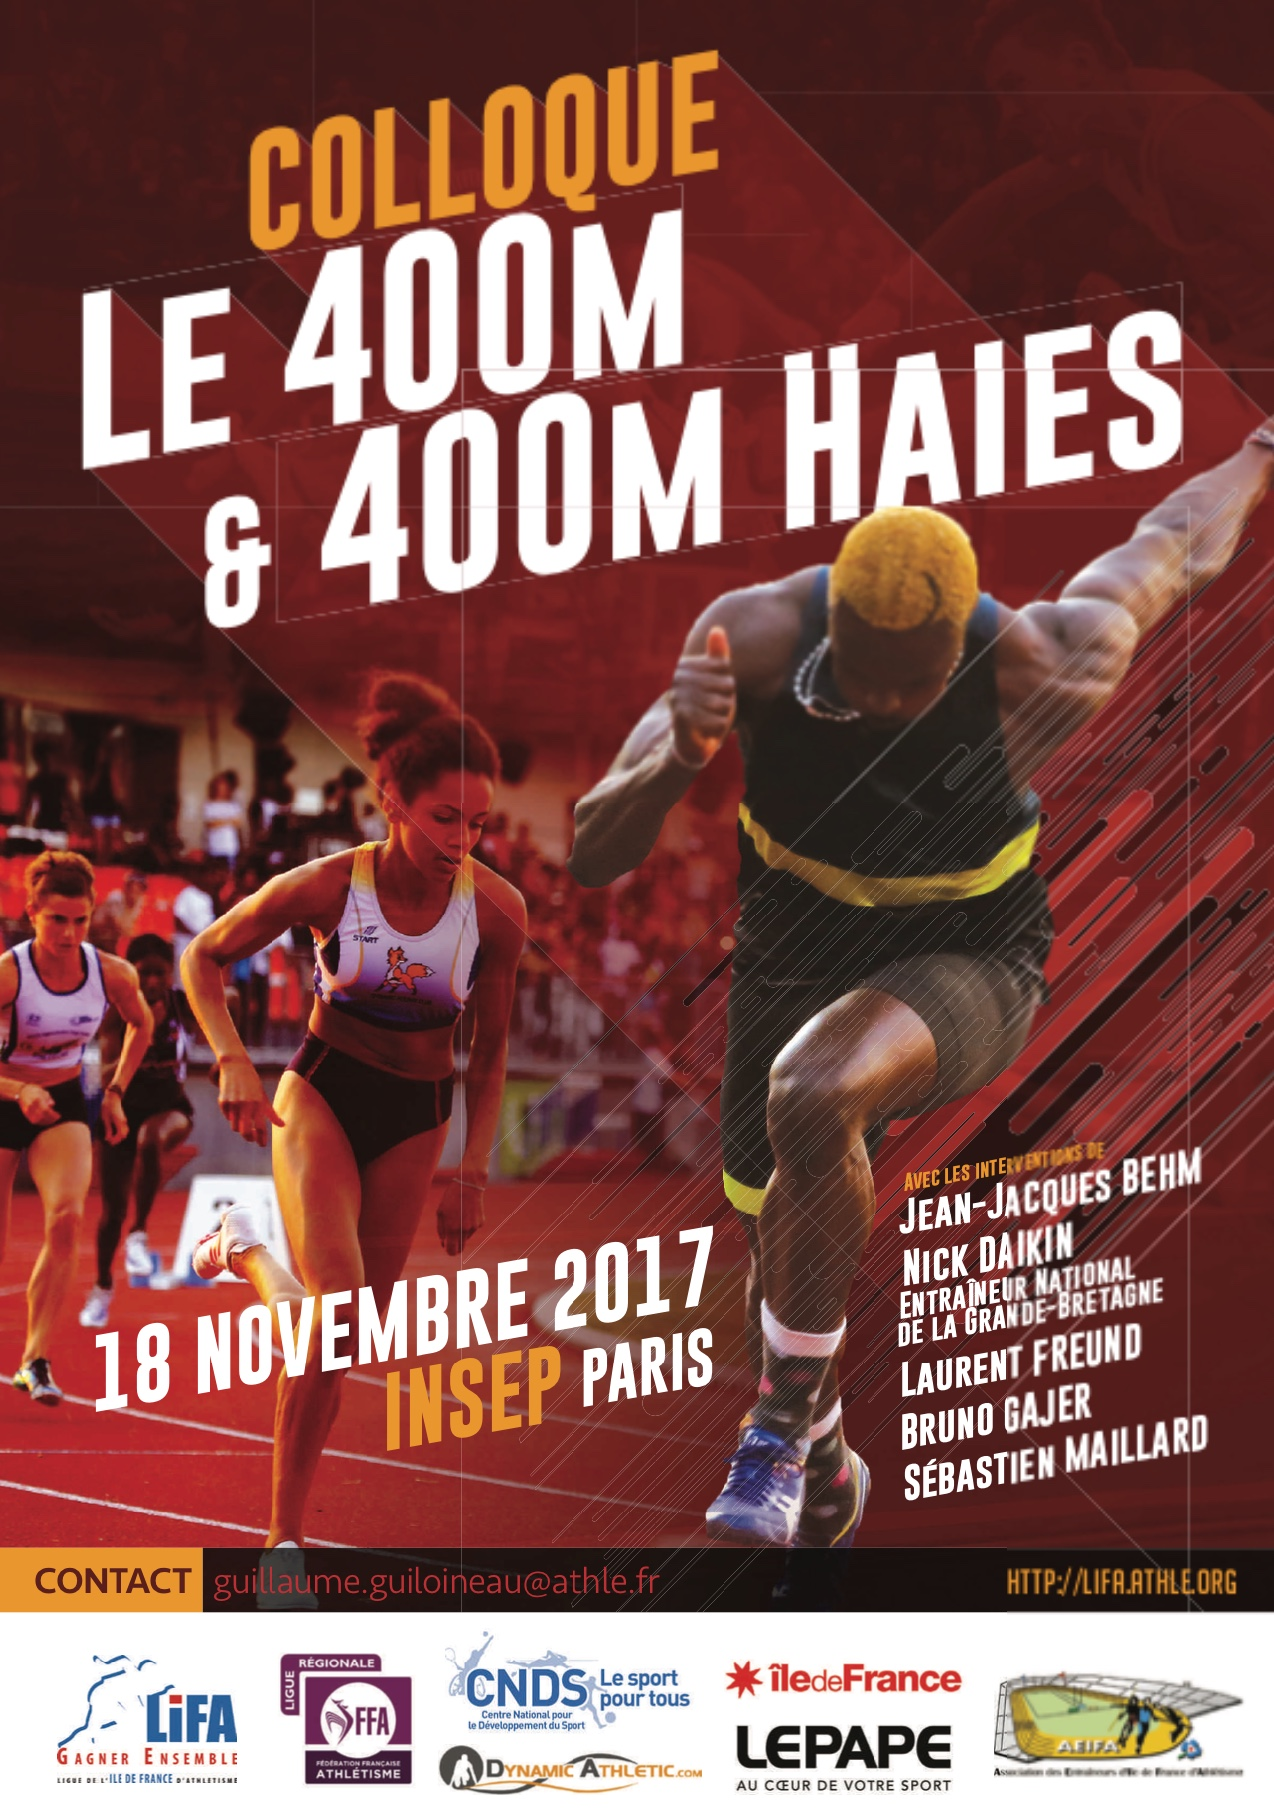 Colloque International 400m – 400m haies